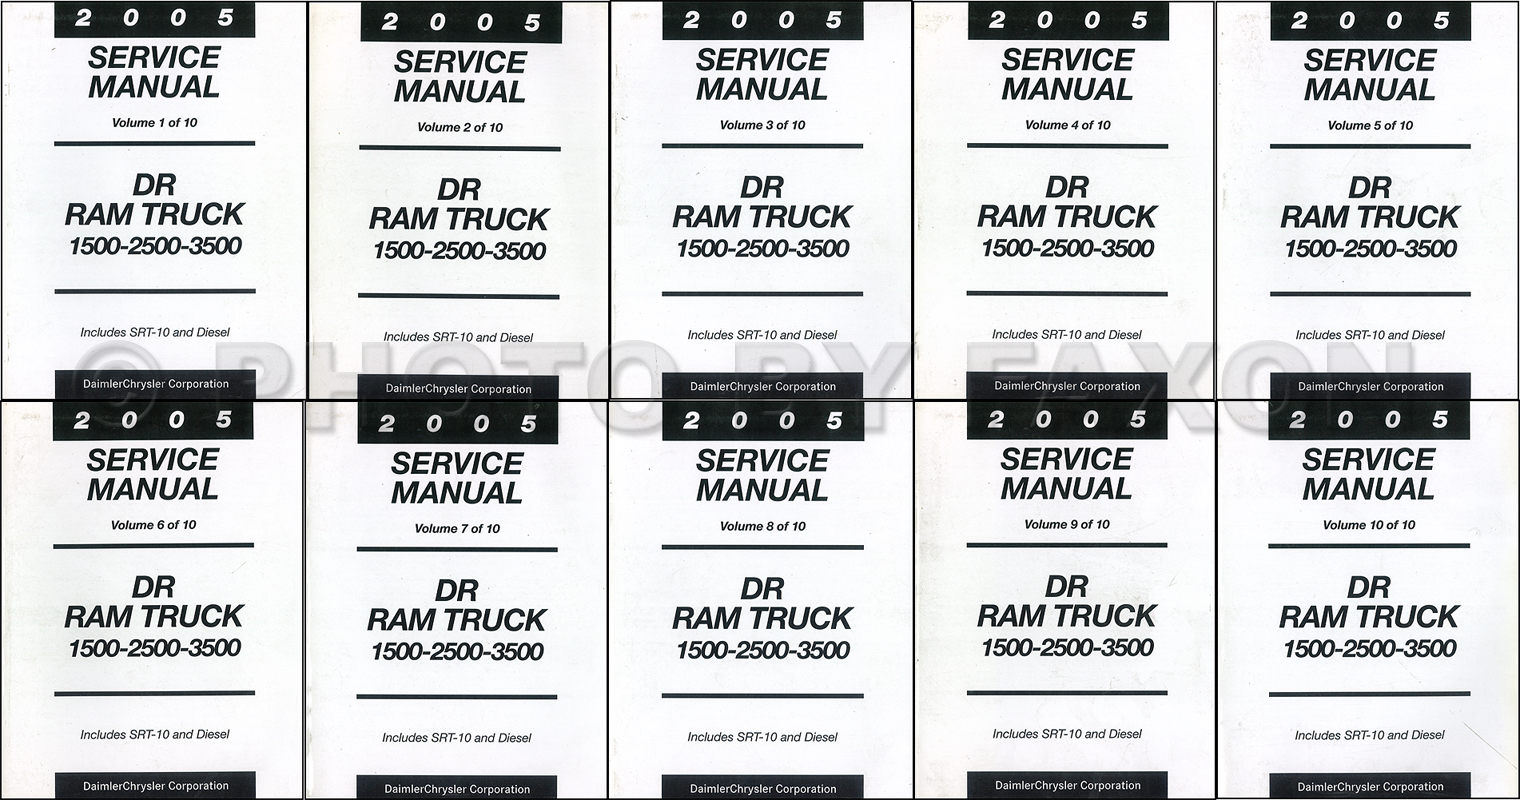 2005 dodge ram truck repair shop manual 10 vol set factory reprint 2005 dodge ram truck repair shop manual 10 vol set factory reprint 1500 2500 3500 cheapraybanclubmaster Choice Image